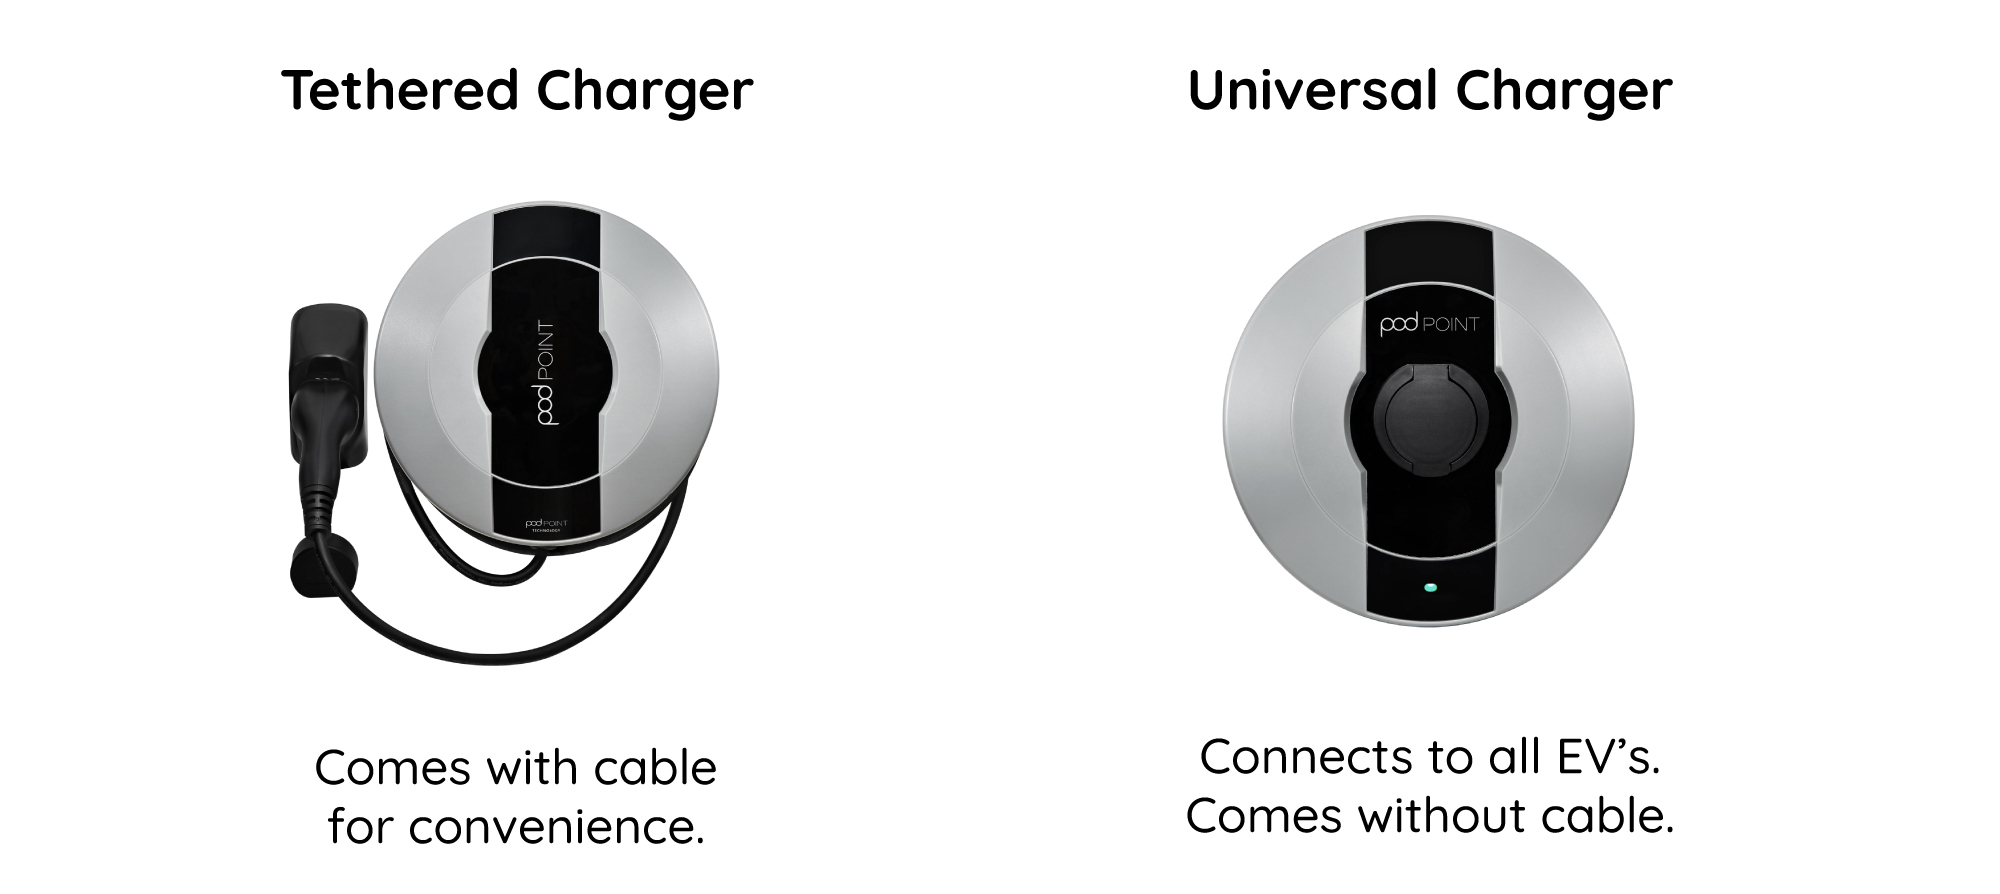 Tethered V Universal Charger 1